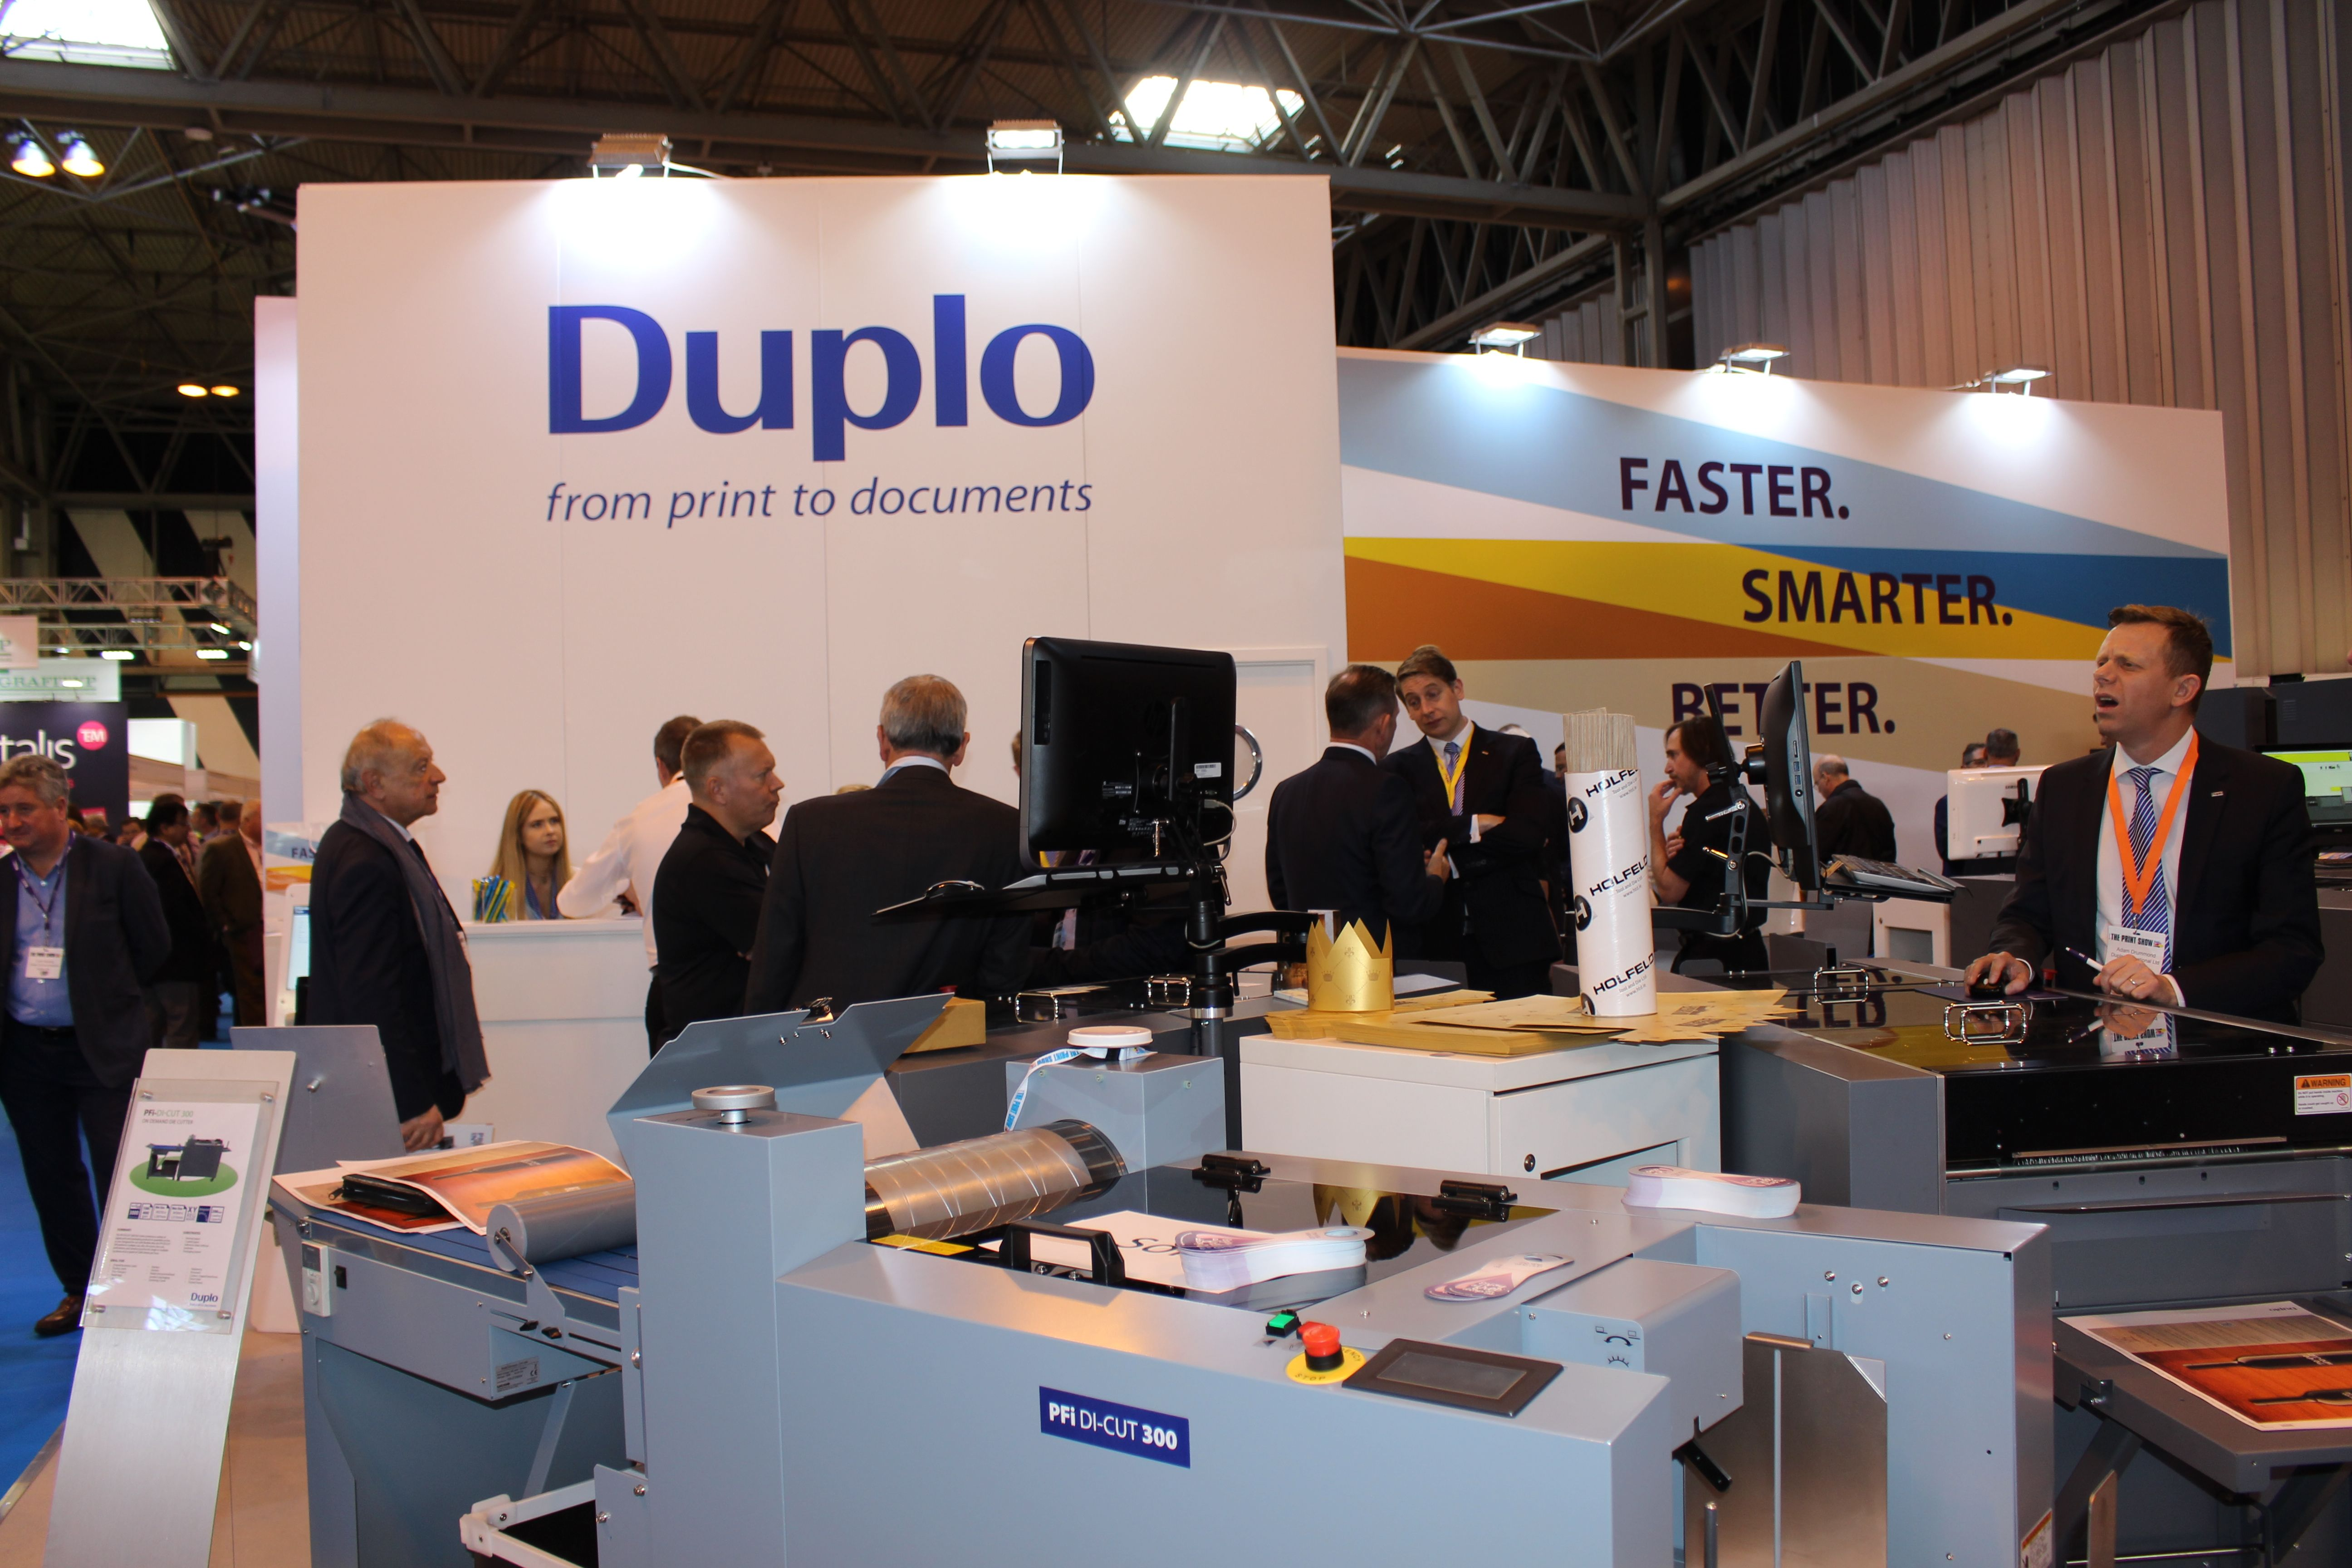 Duplo at The Print Show 2016